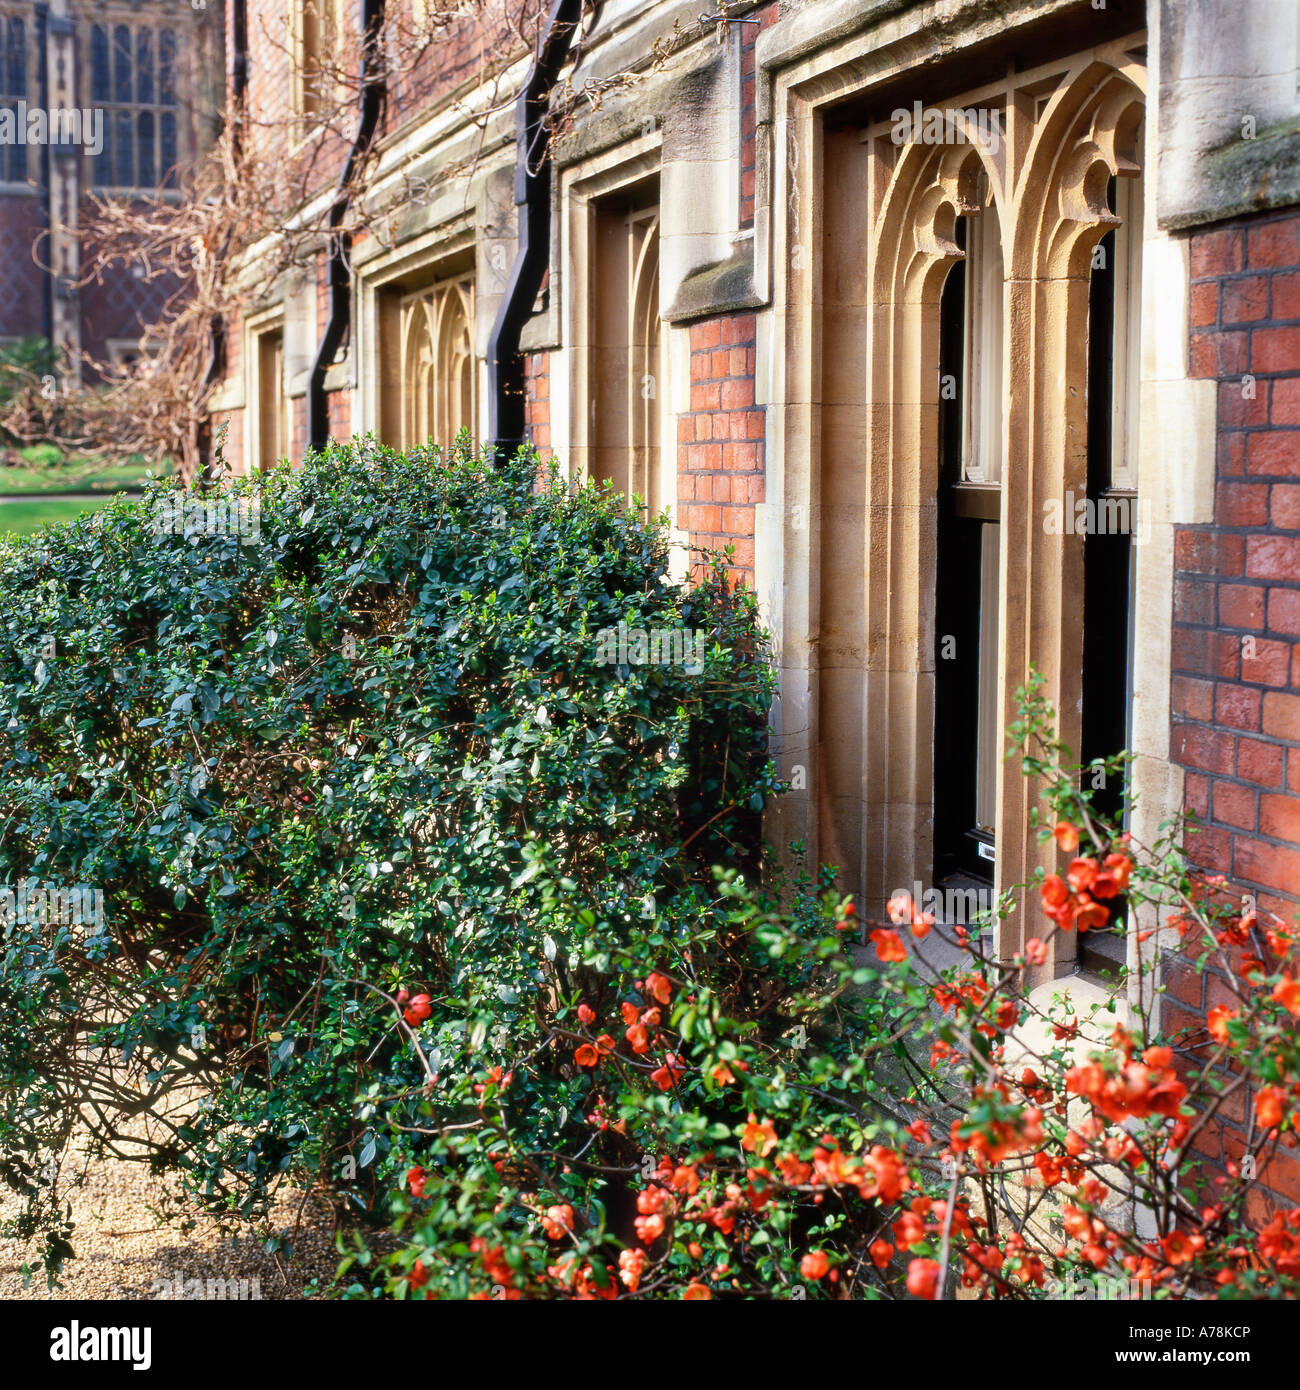 CHAENOMELES PLANT with orange flowers architectural detail of window at Old Square, Inns of Court, Lincoln's - Stock Image